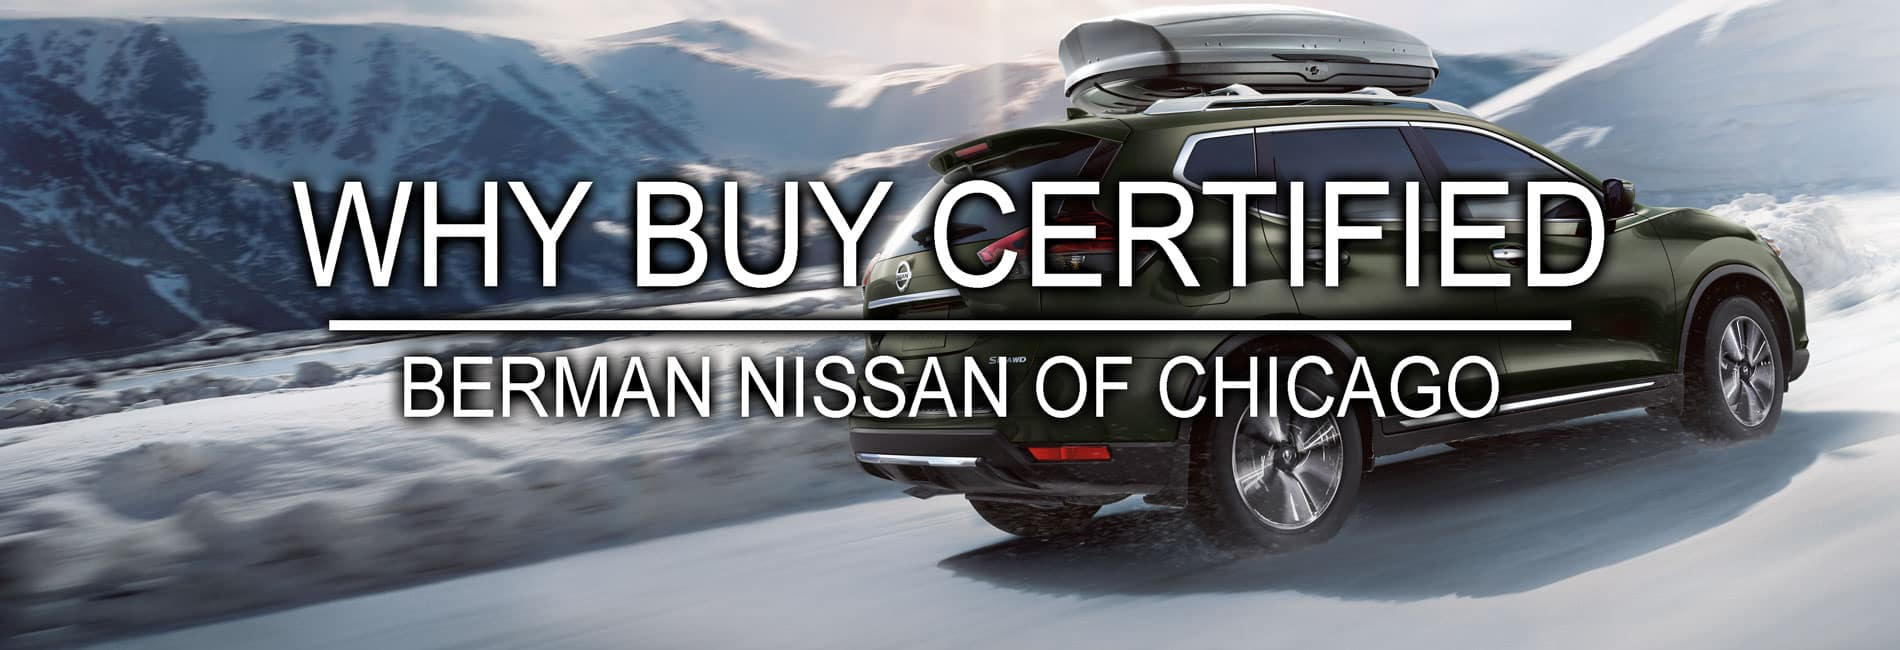 Why Buy Certified Pre-Owned from Berman Nissan of Chicago